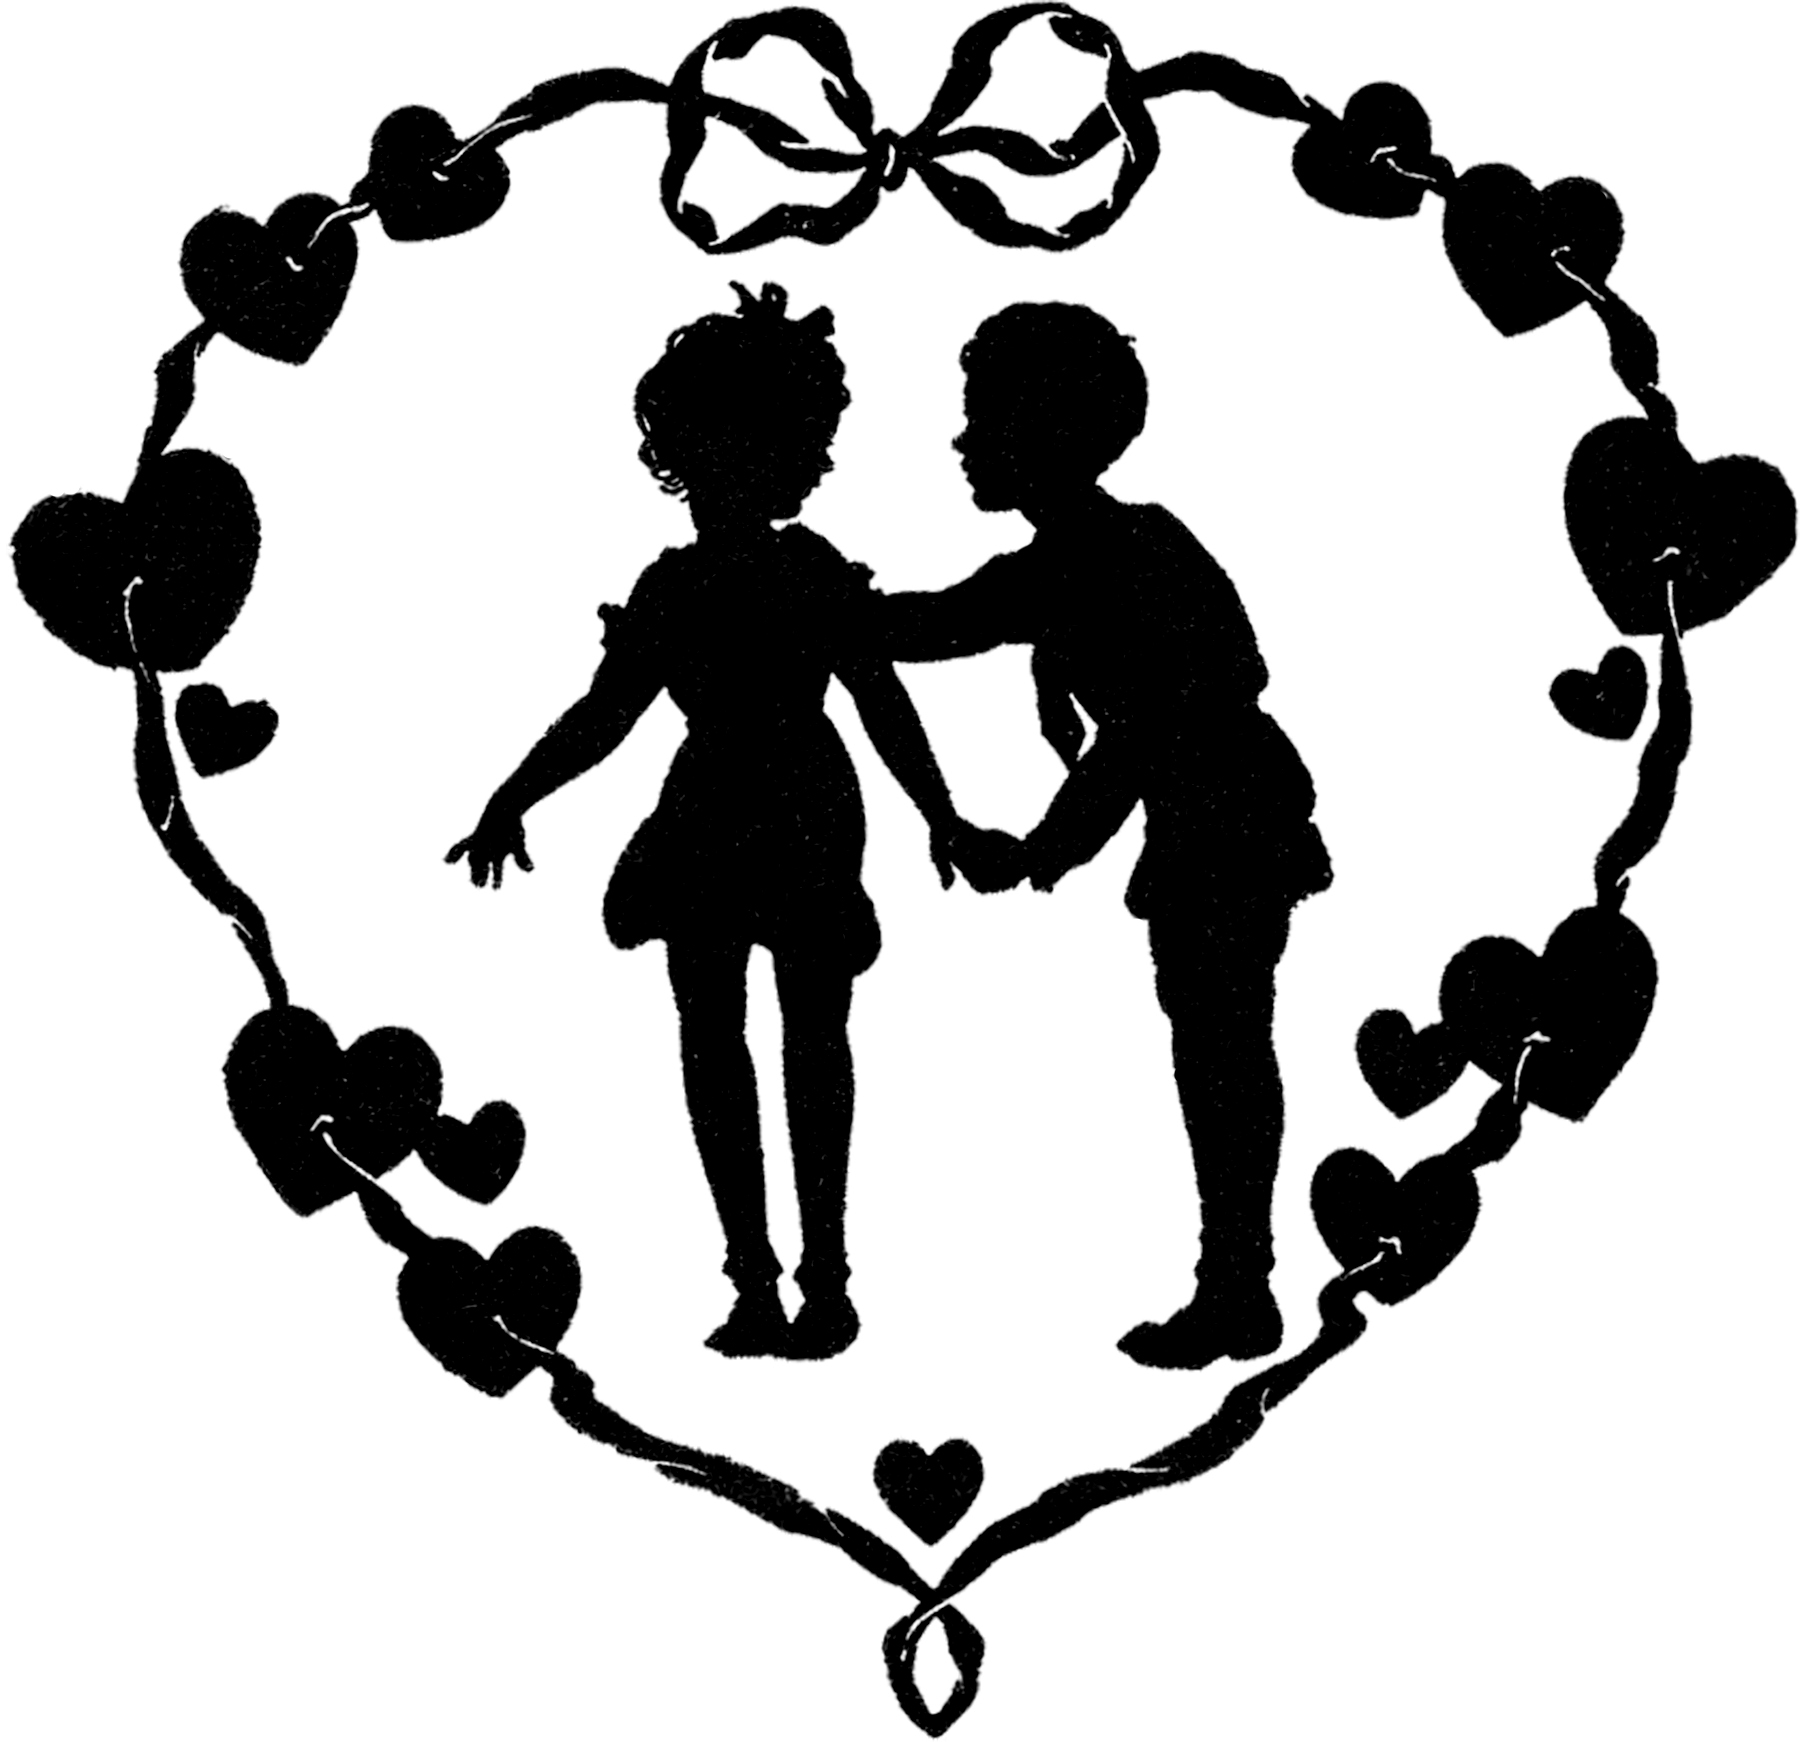 Vintage Valentine Silhouette - Cute! - The Graphics Fairy